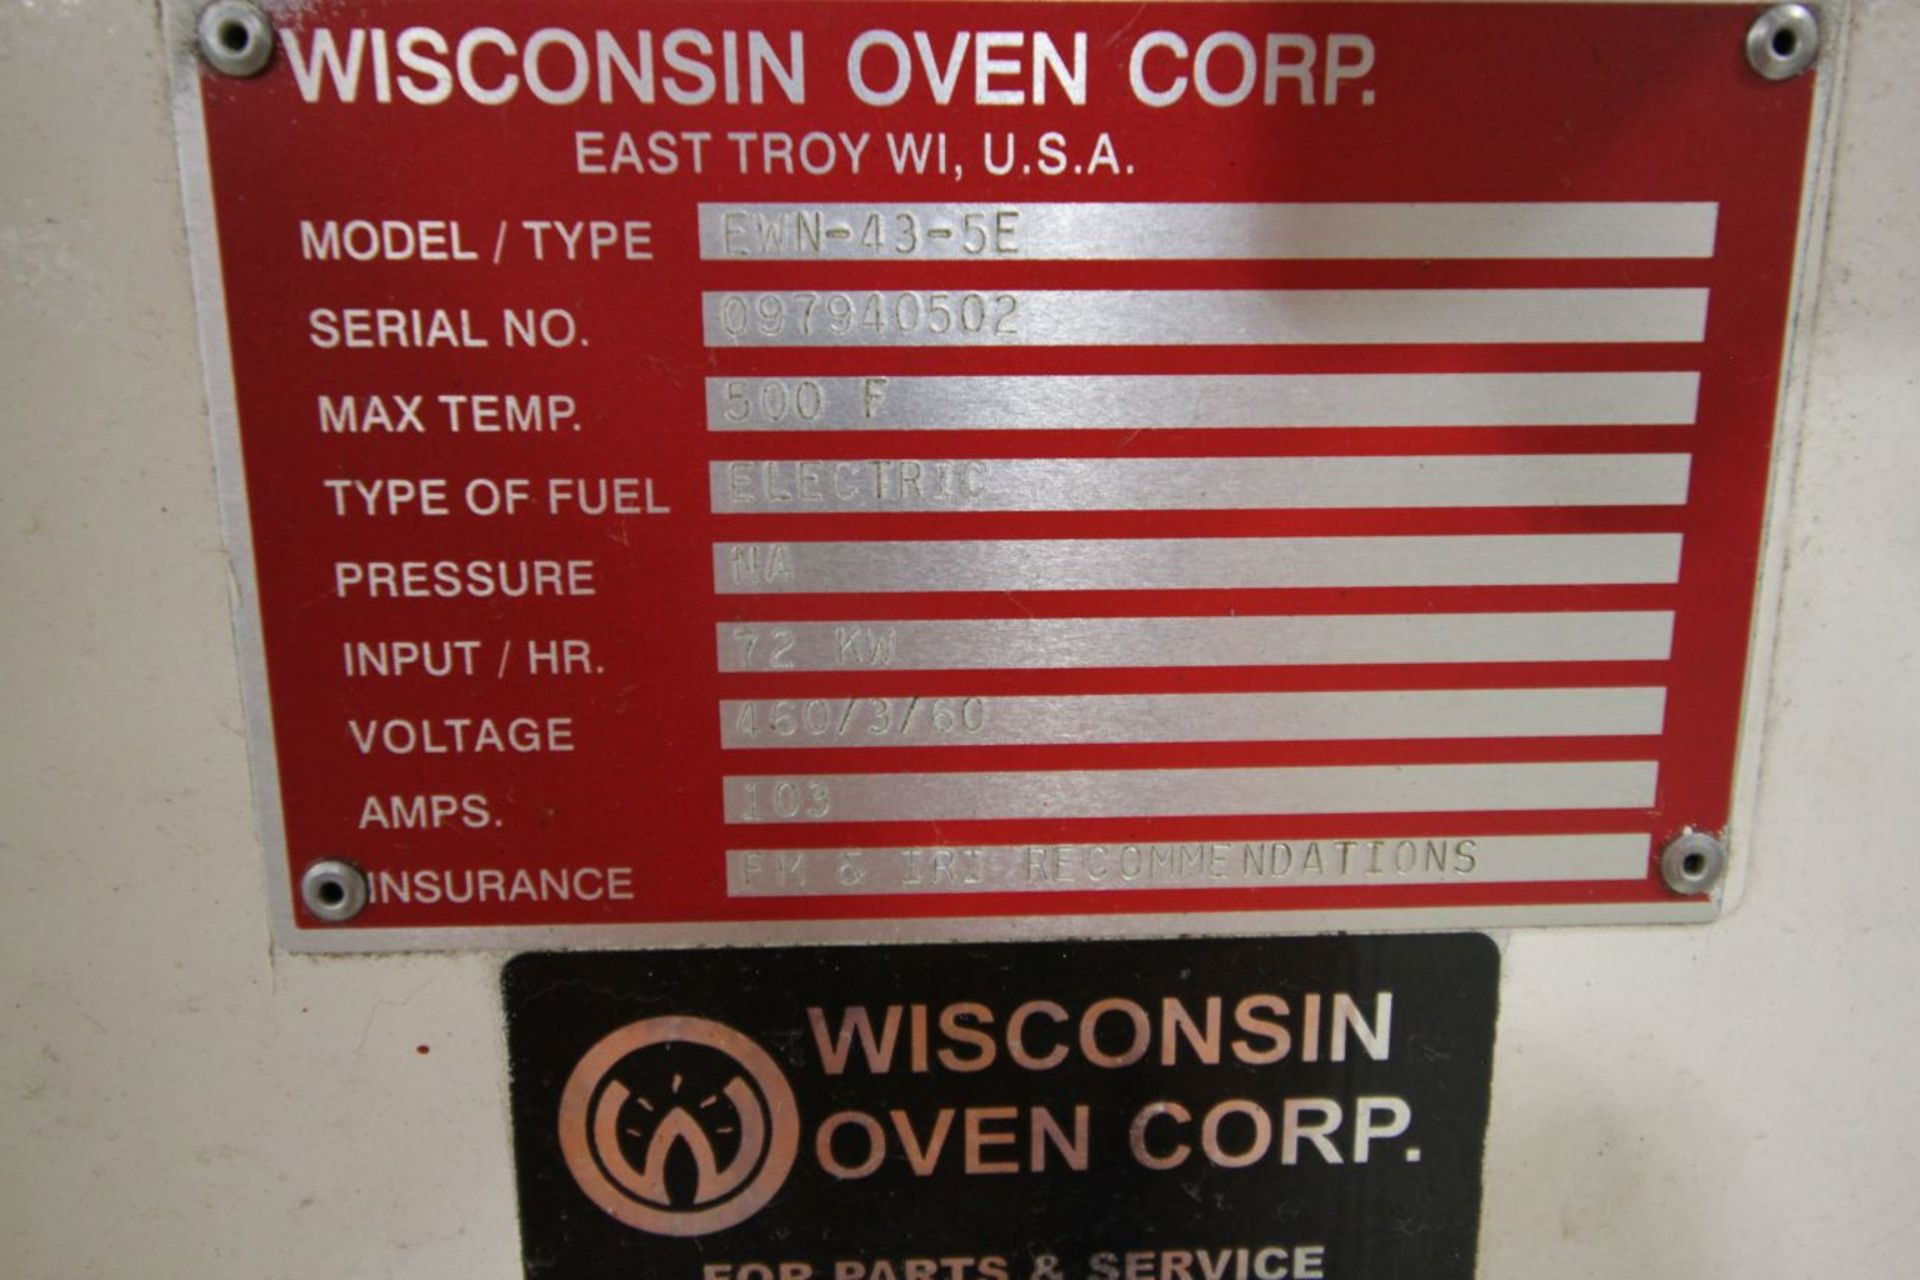 2- WISCONSIN OVEN CORP MODEL EWN-43-5E, BT 140094 & 140153 , 500 DEGREE OVEN - Image 6 of 6